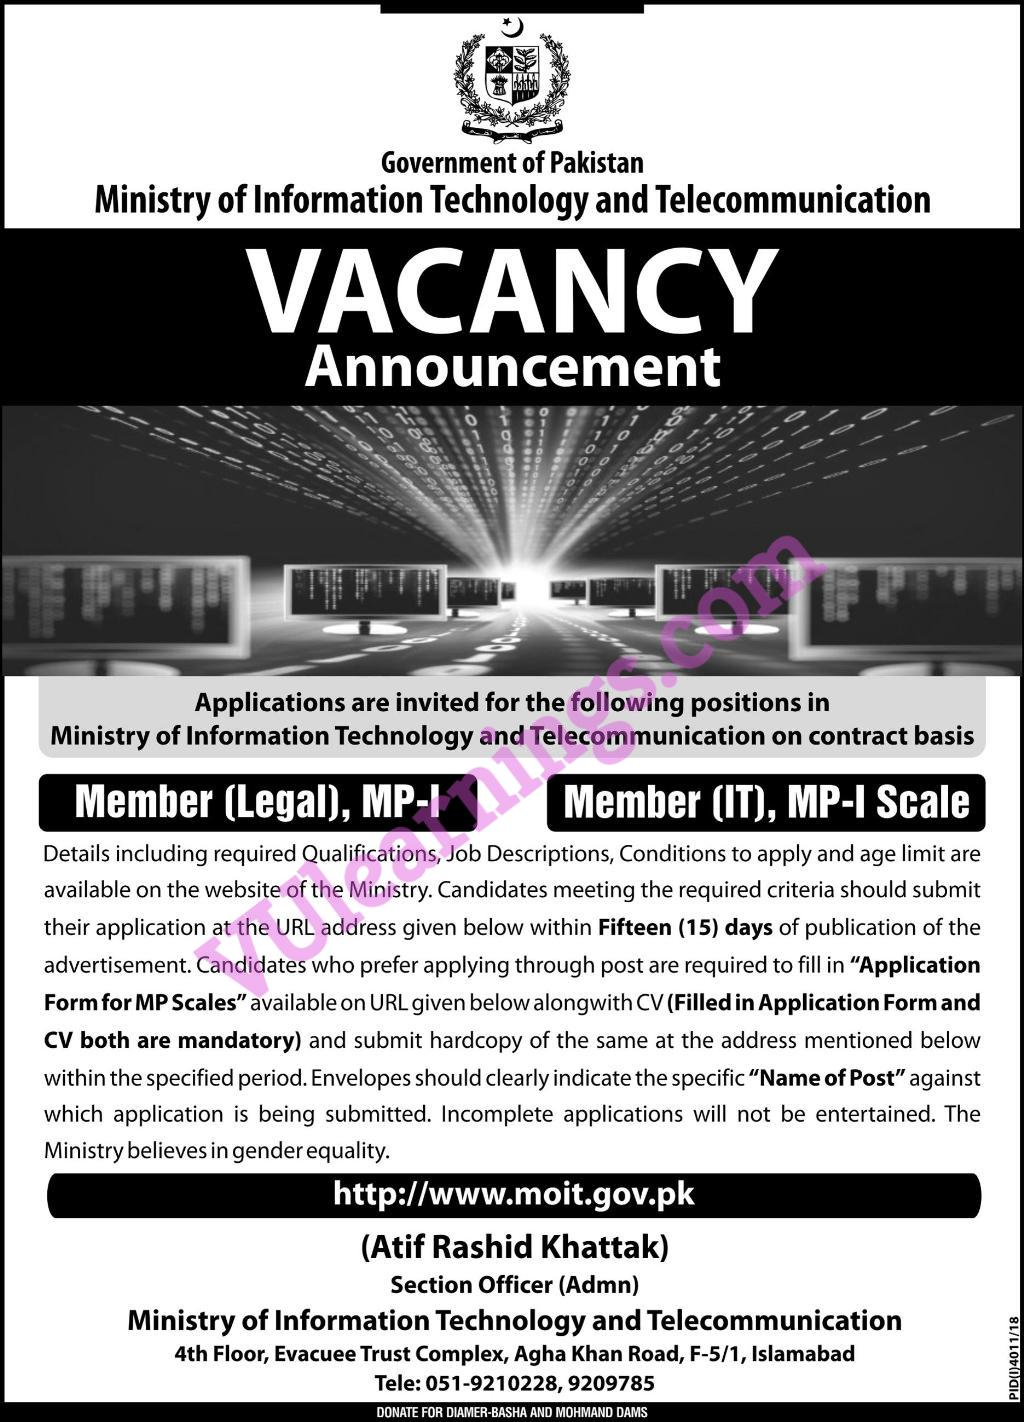 Government of Pakistan Ministry of Information Technology and Telecommunication